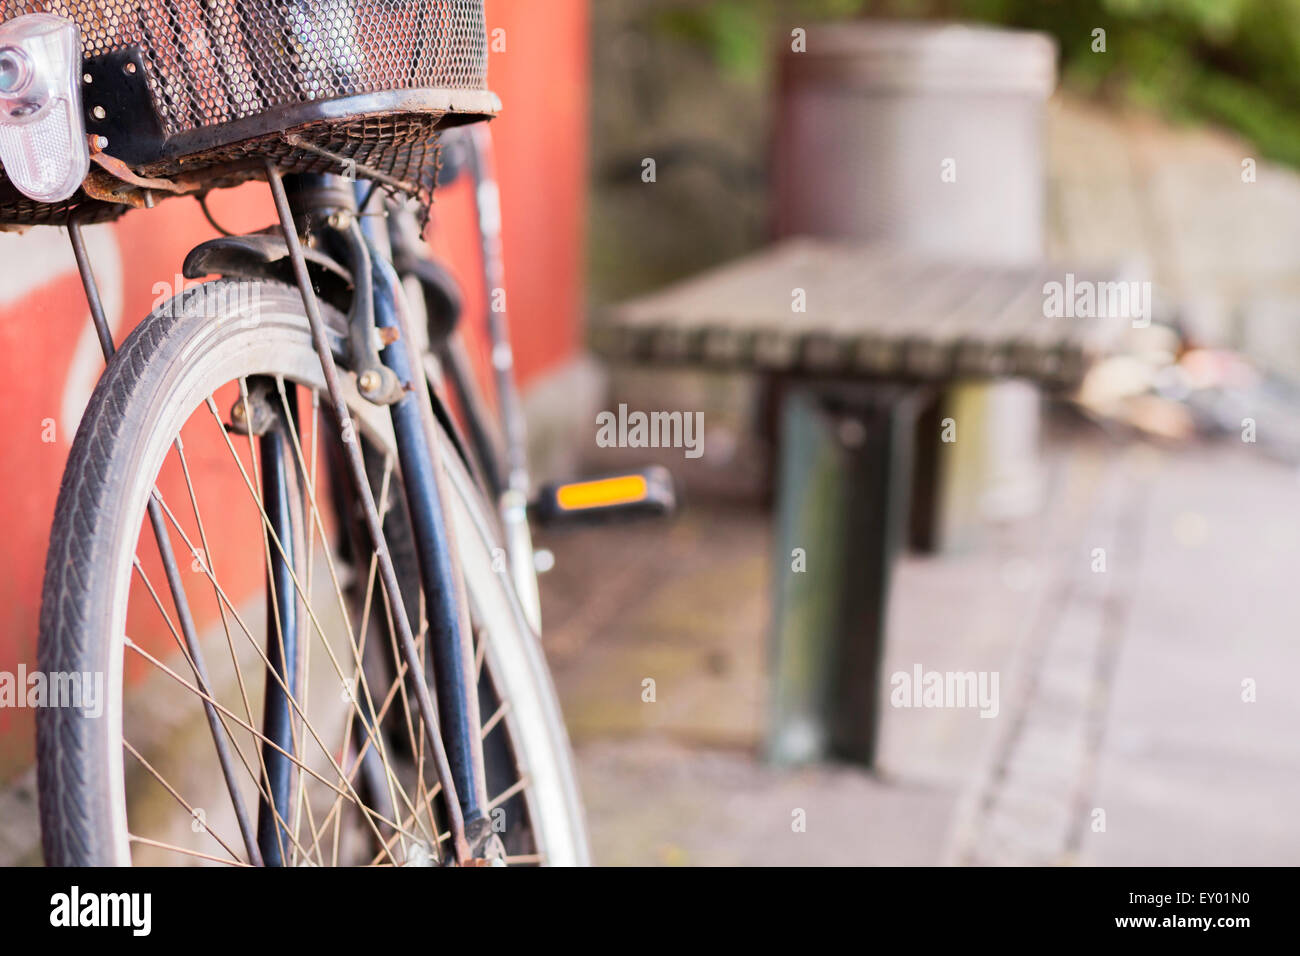 Stolen bicycle left behind in urban street - Stock Image